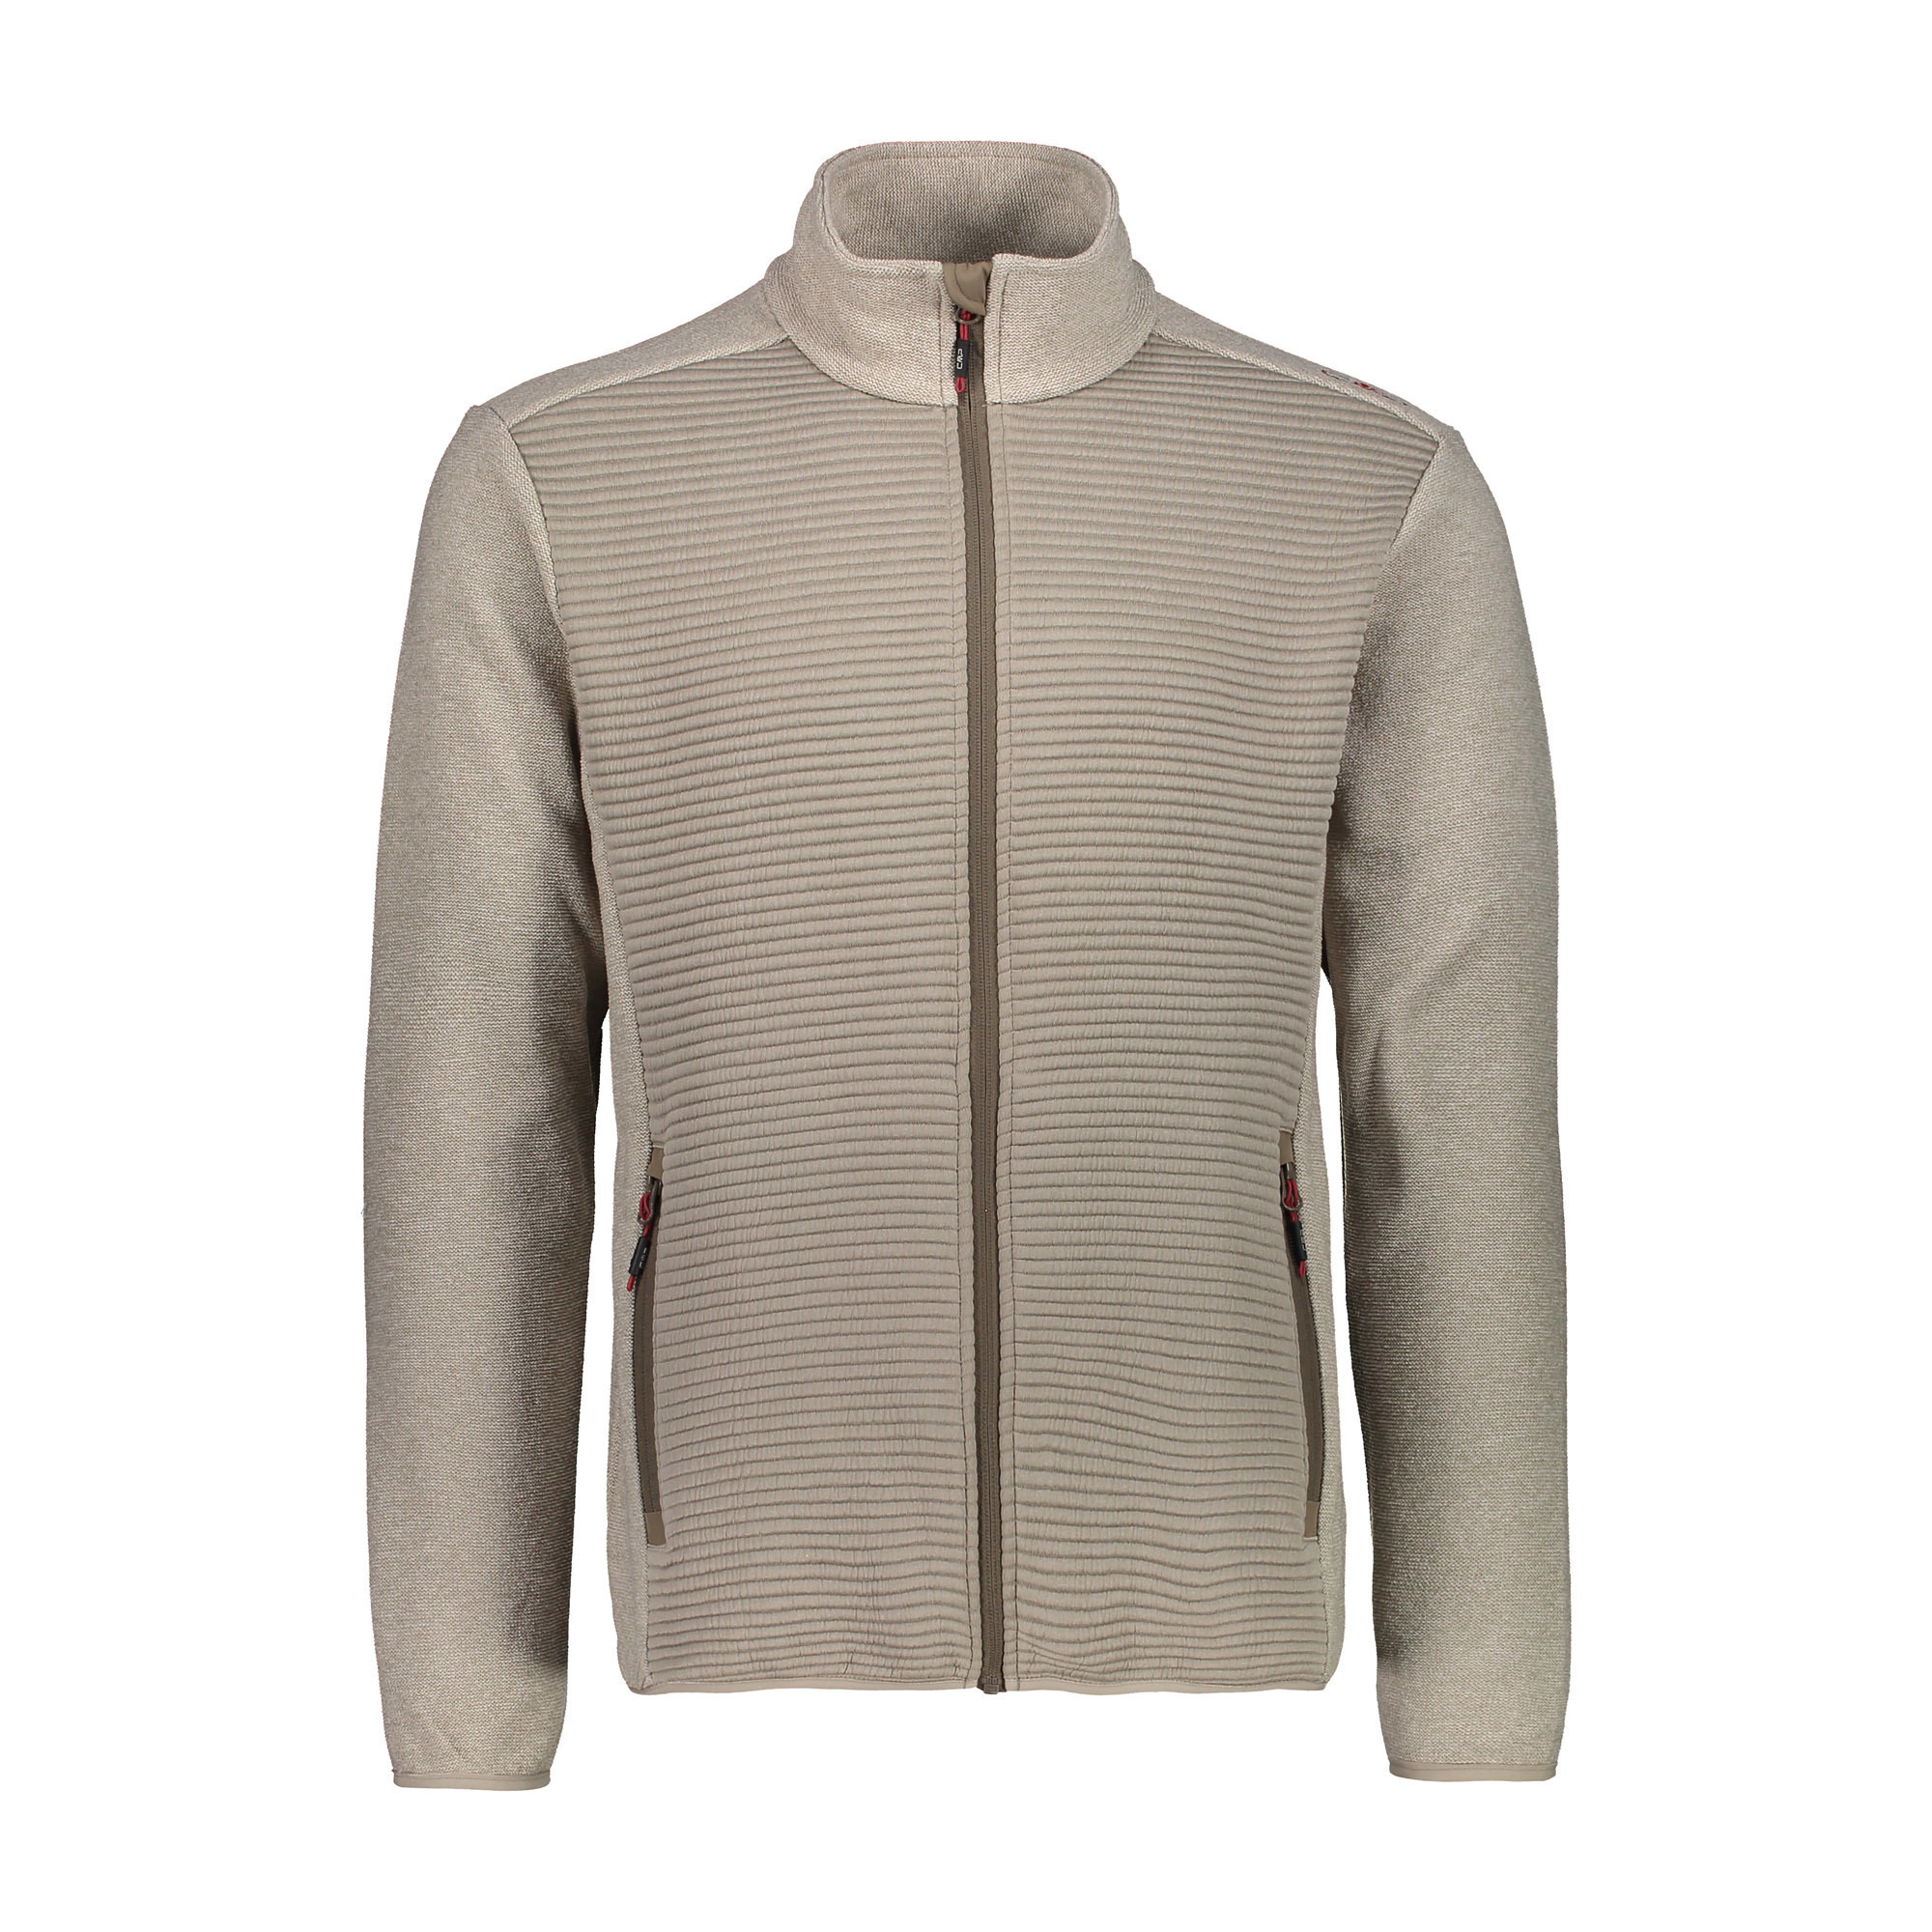 Man Jacket Knitted